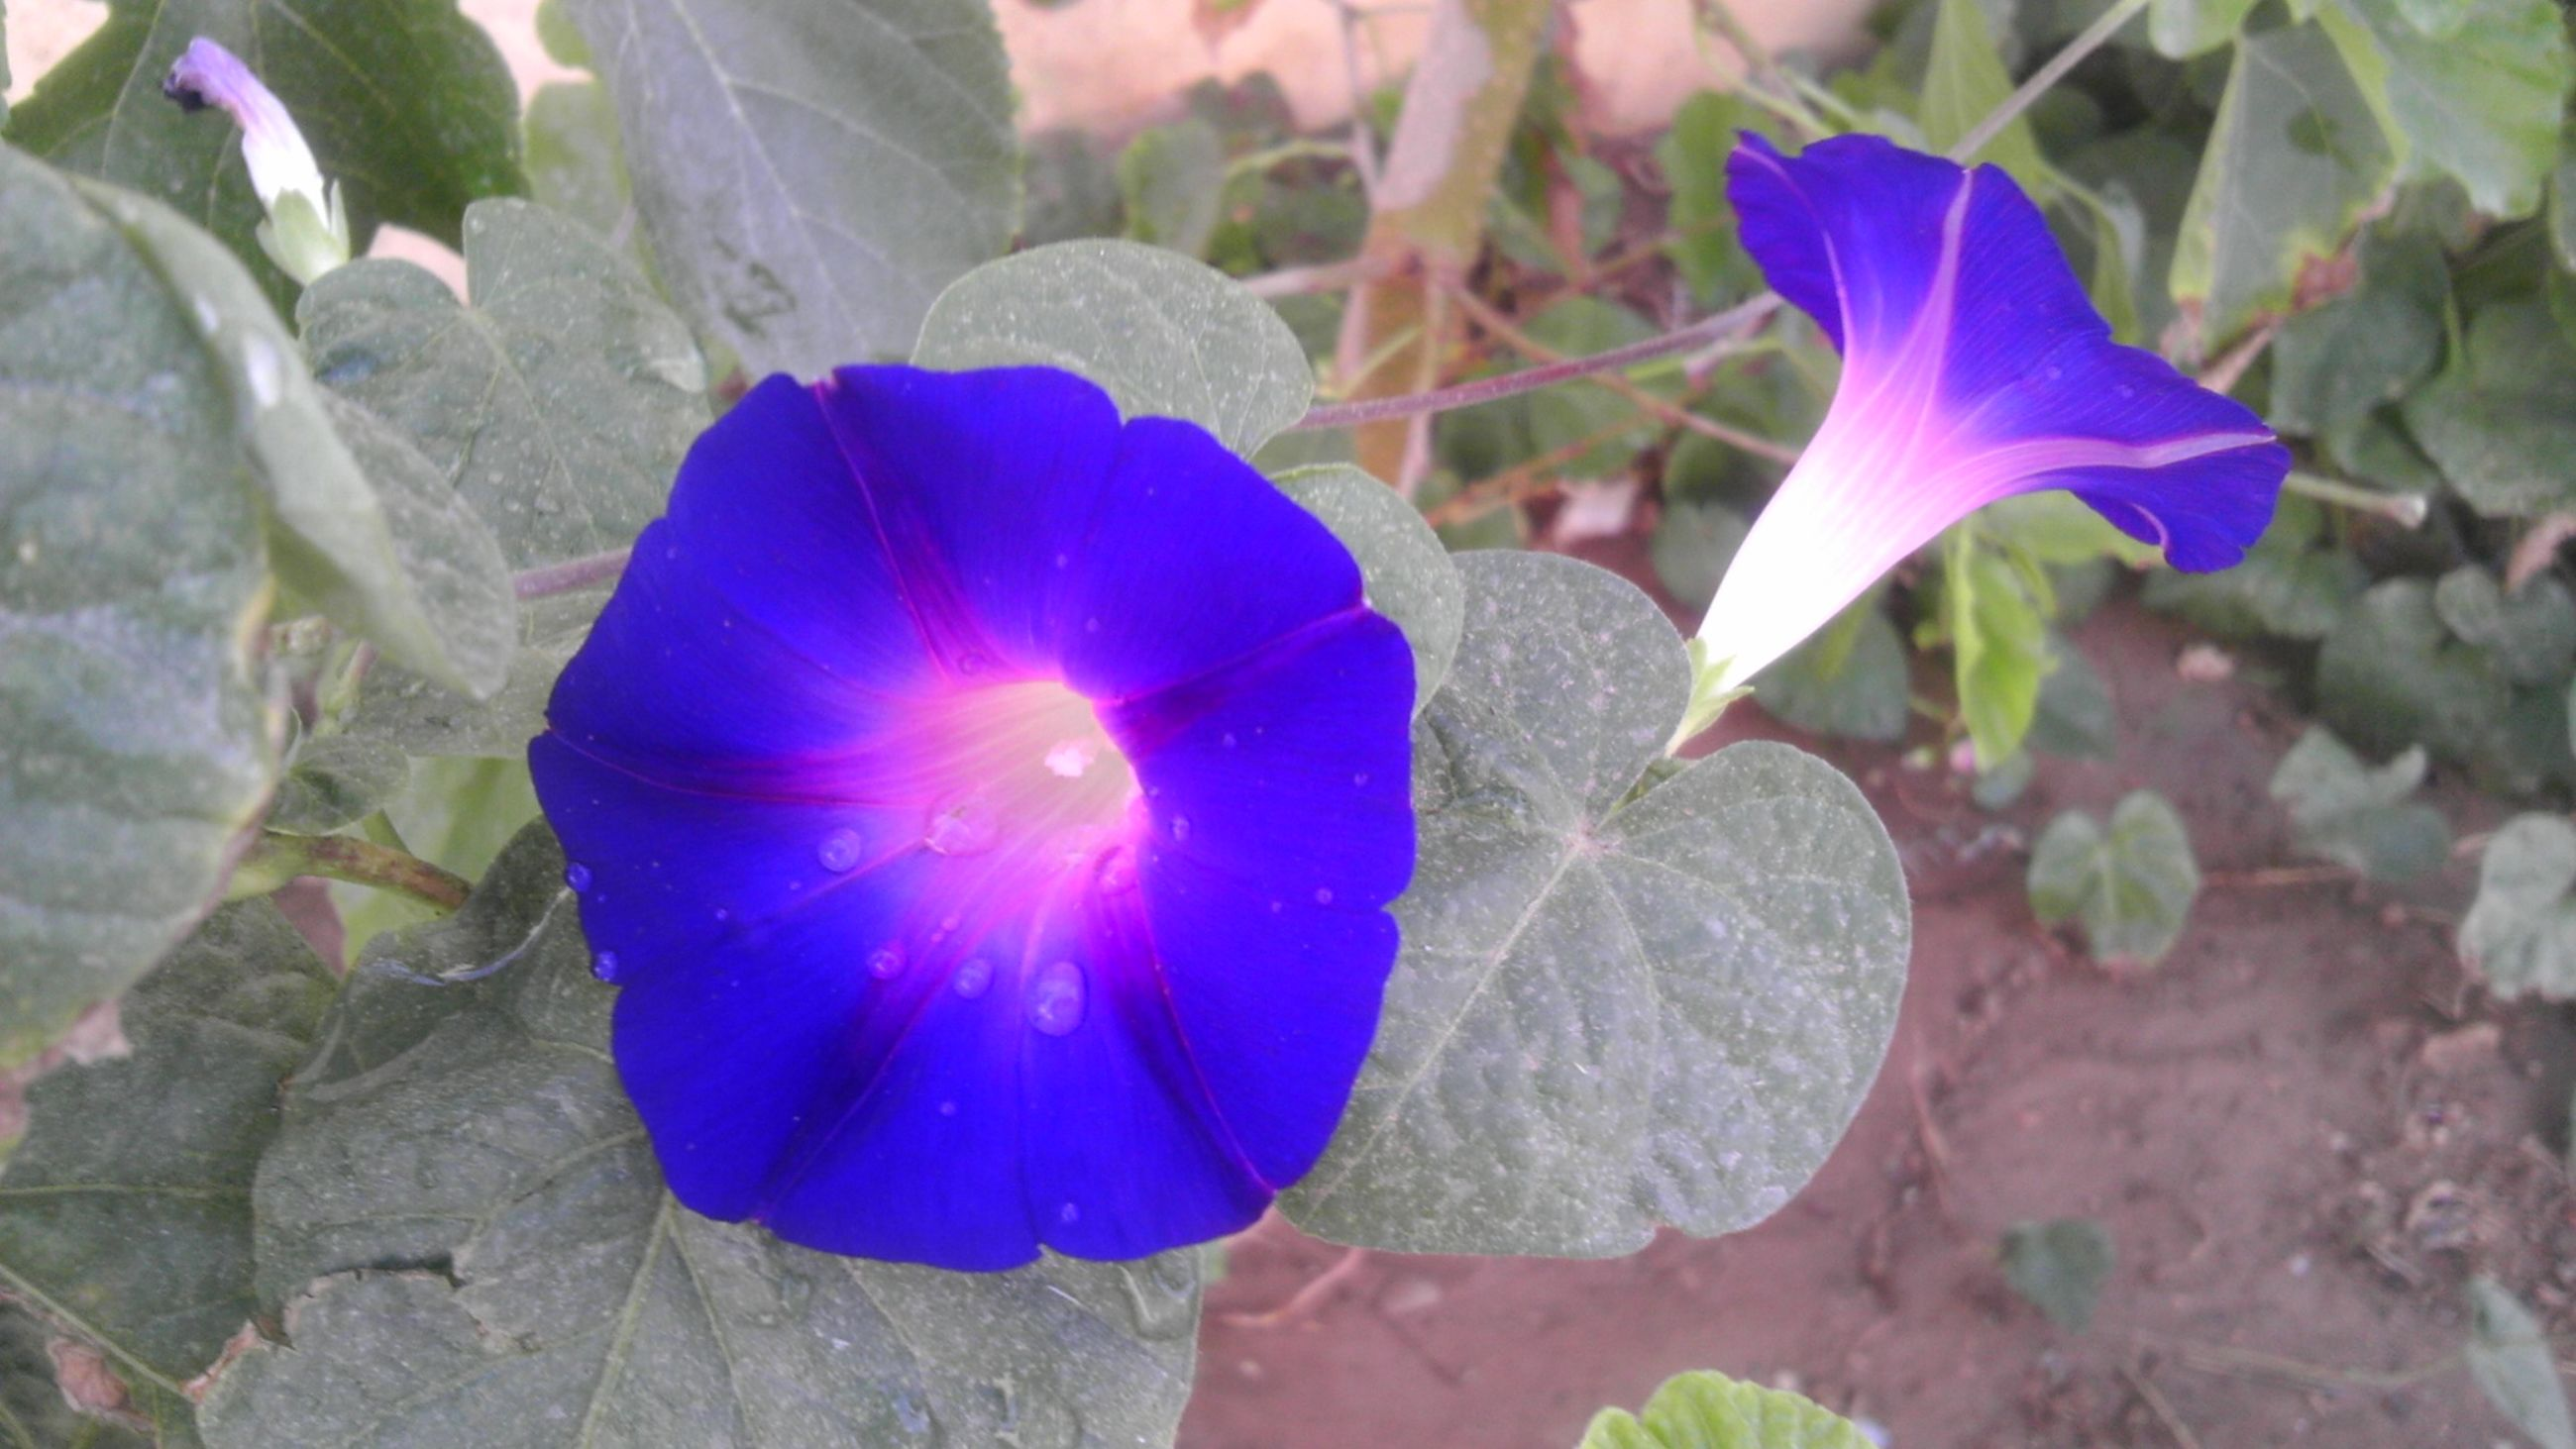 purple, flower, fragility, petal, freshness, close-up, growth, beauty in nature, blue, flower head, leaf, nature, plant, focus on foreground, single flower, day, blooming, natural pattern, outdoors, no people